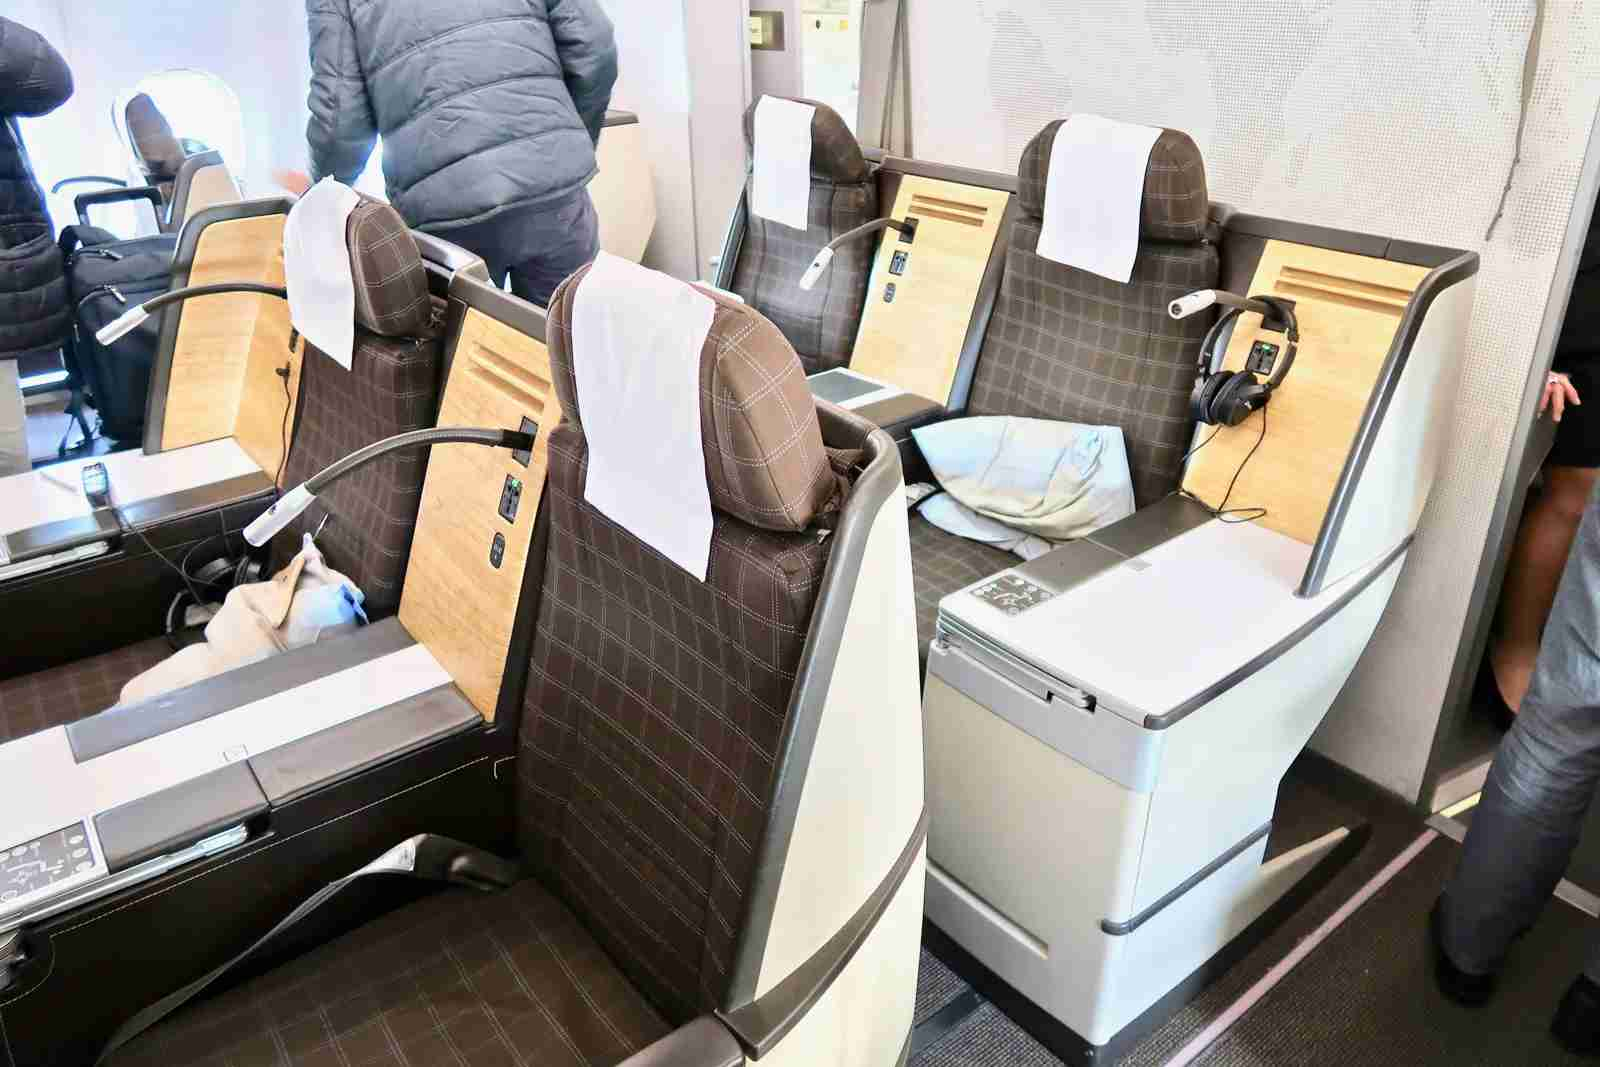 Middle seats in the forward business class section